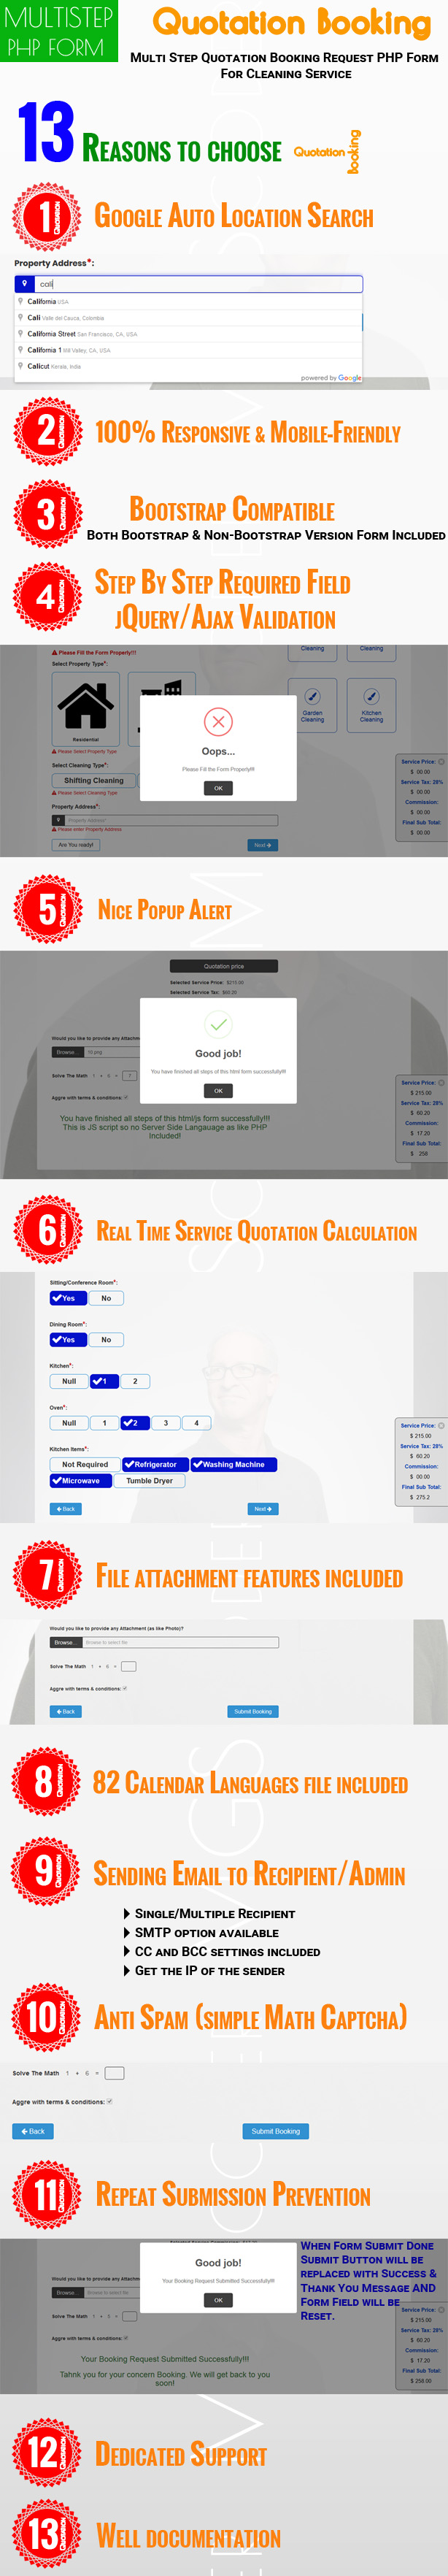 quotation booking multi step quotation booking request php form